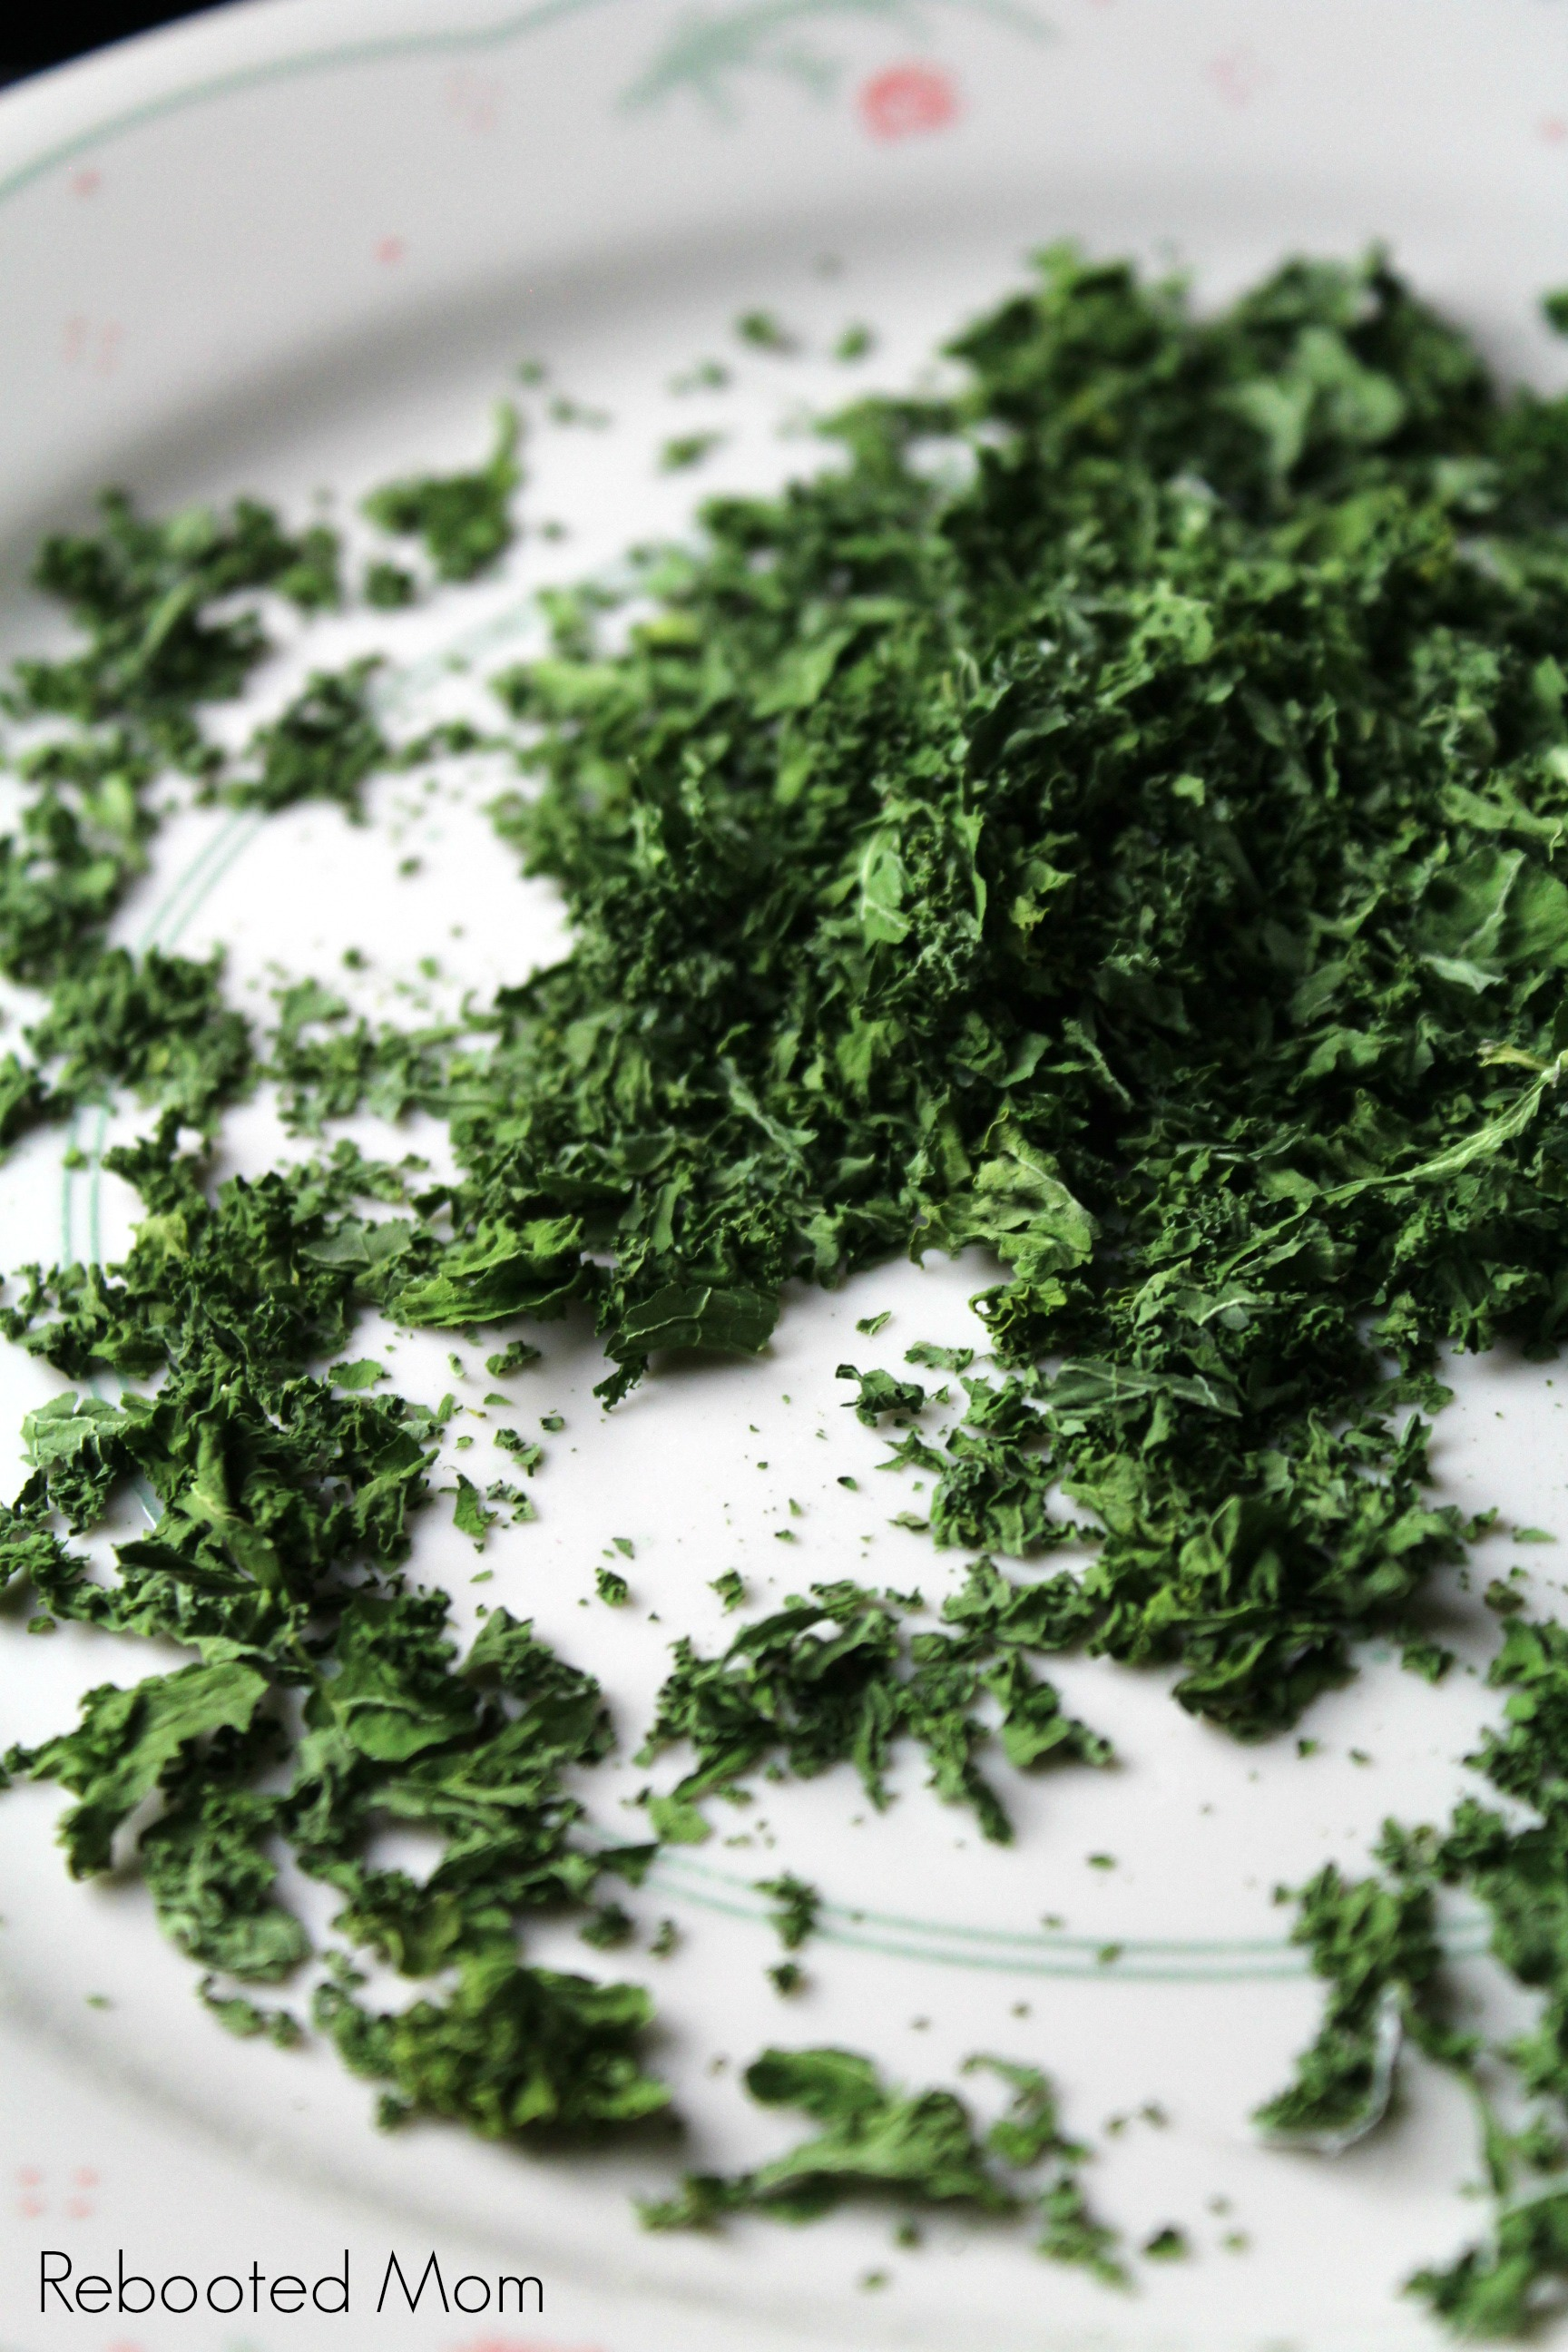 Dehydrated Kale Flakes